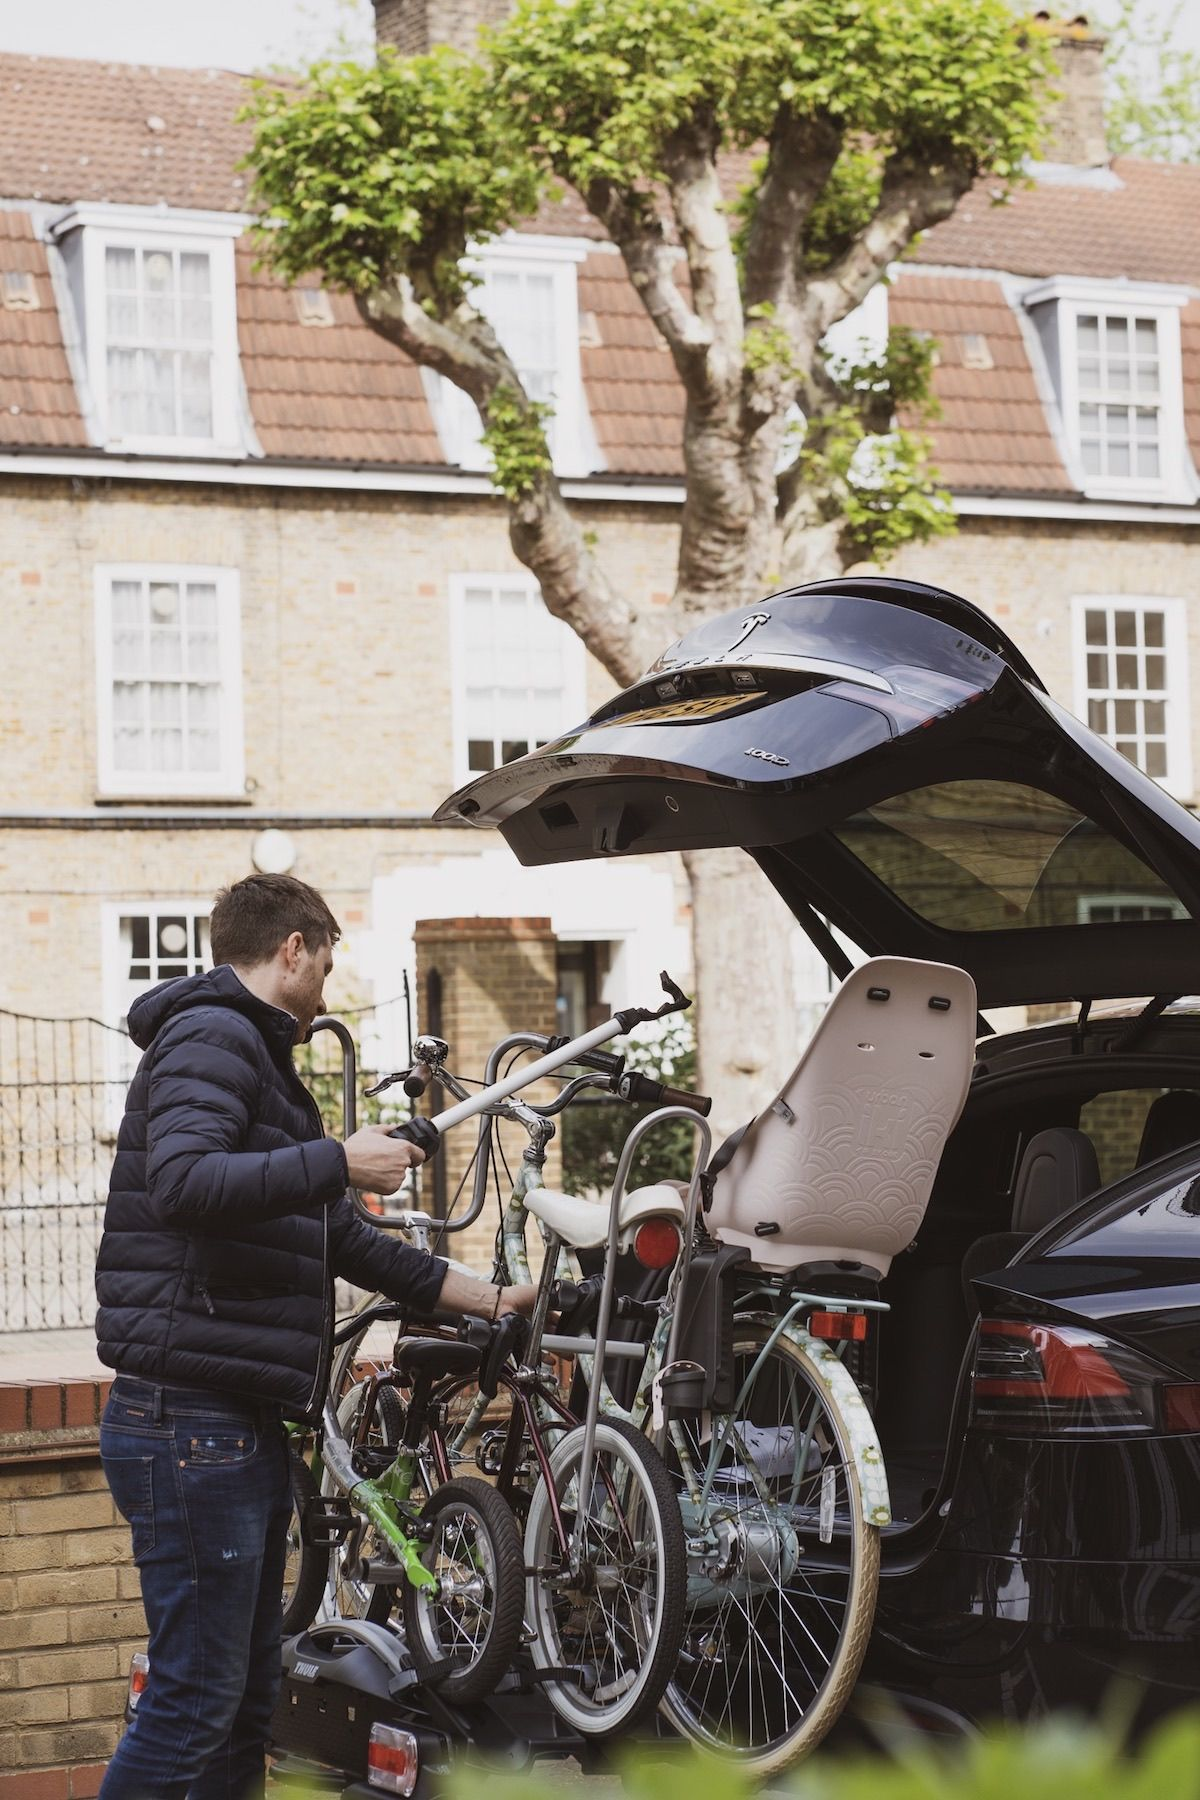 Thule did it again - THE dream bike rack for families